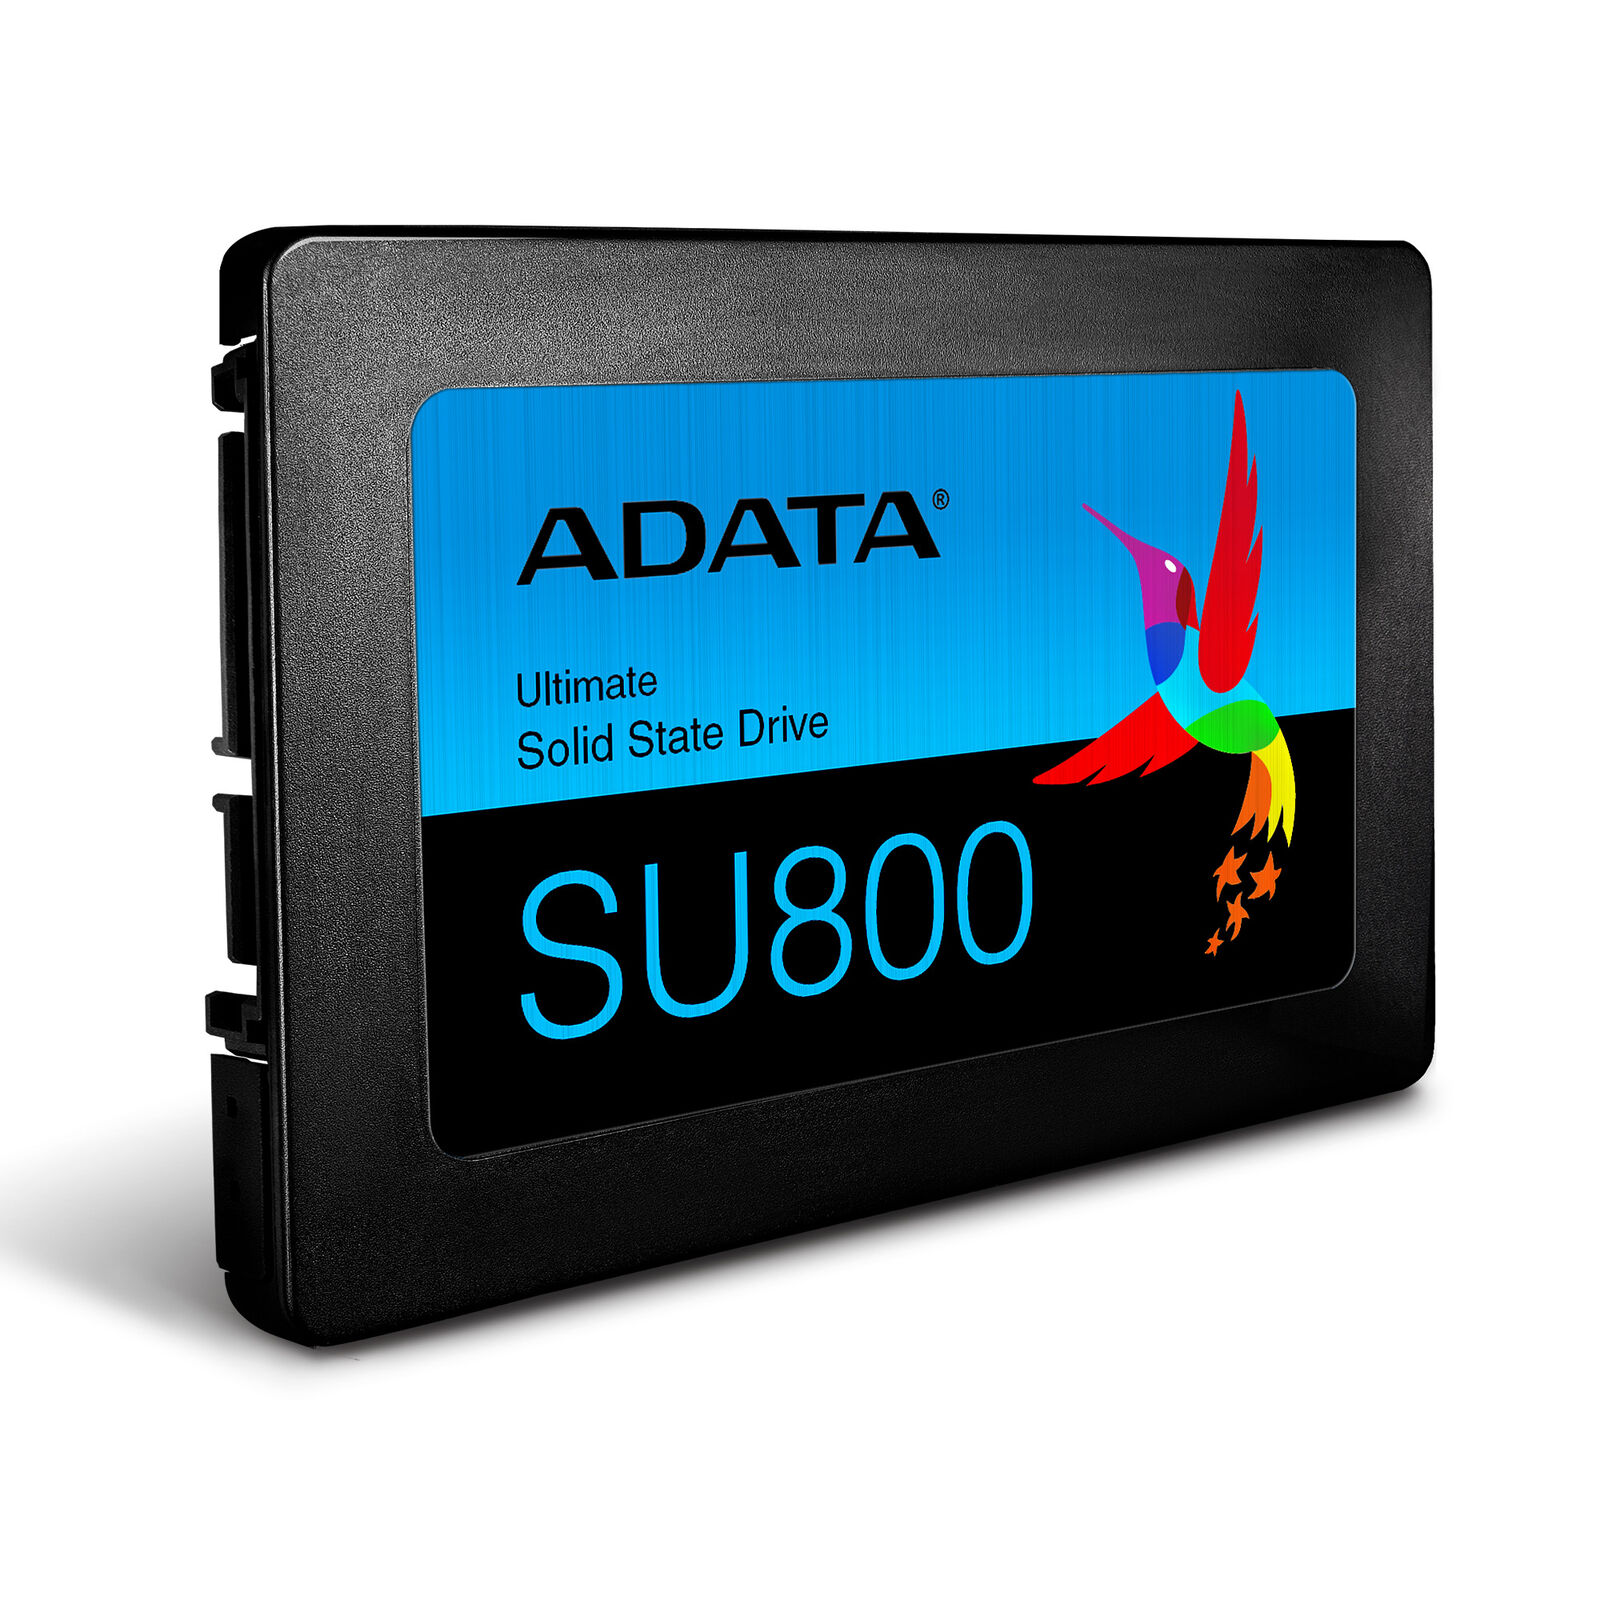 ADATA Ultimate Series: SU800 128GB Internal SATA Solid State Drive. Buy it now for 23.99